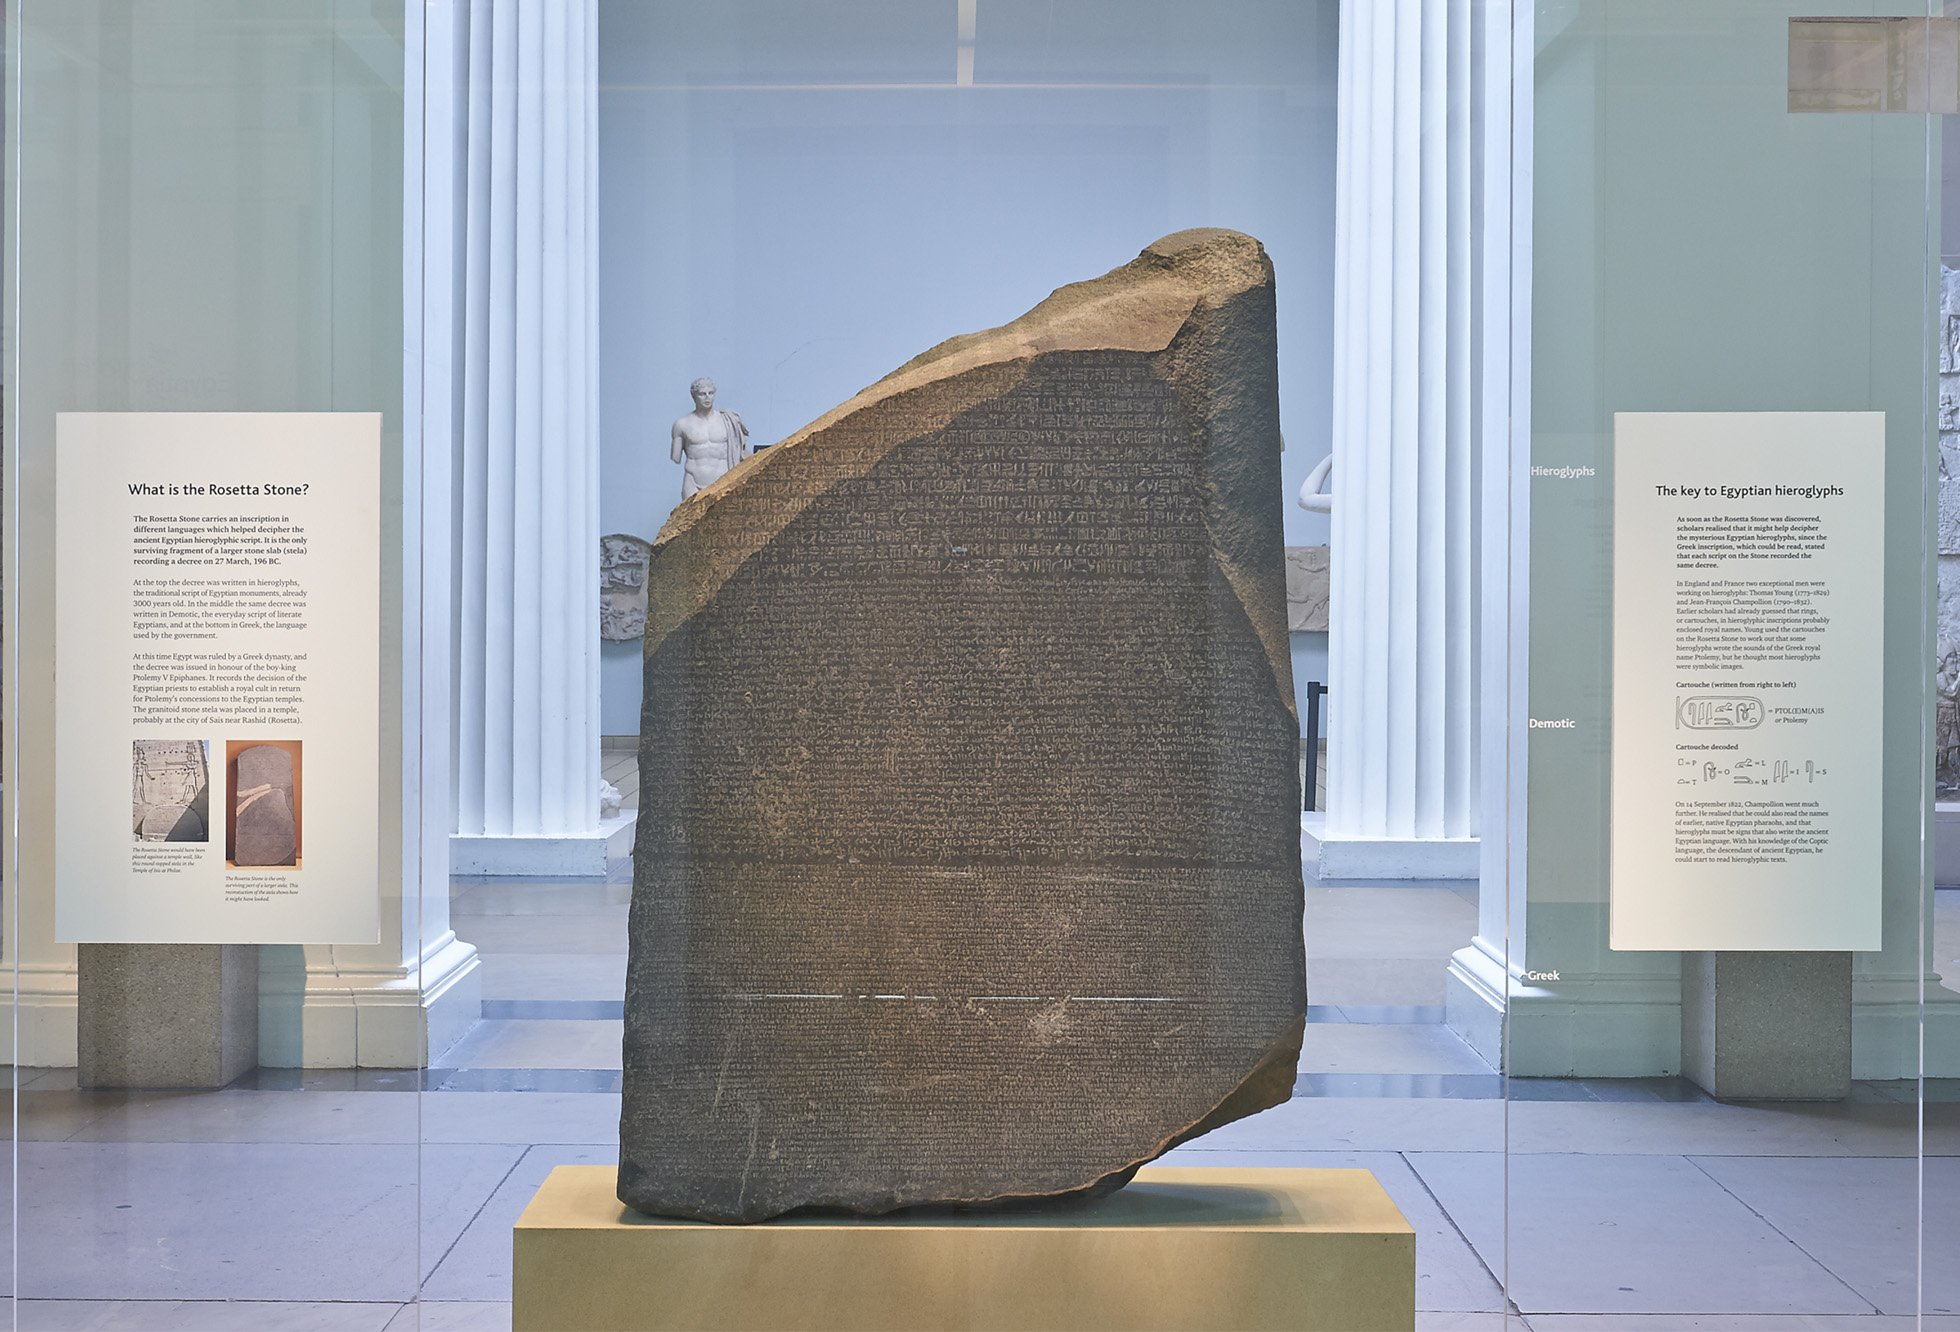 The Rosetta Stone in Room 4